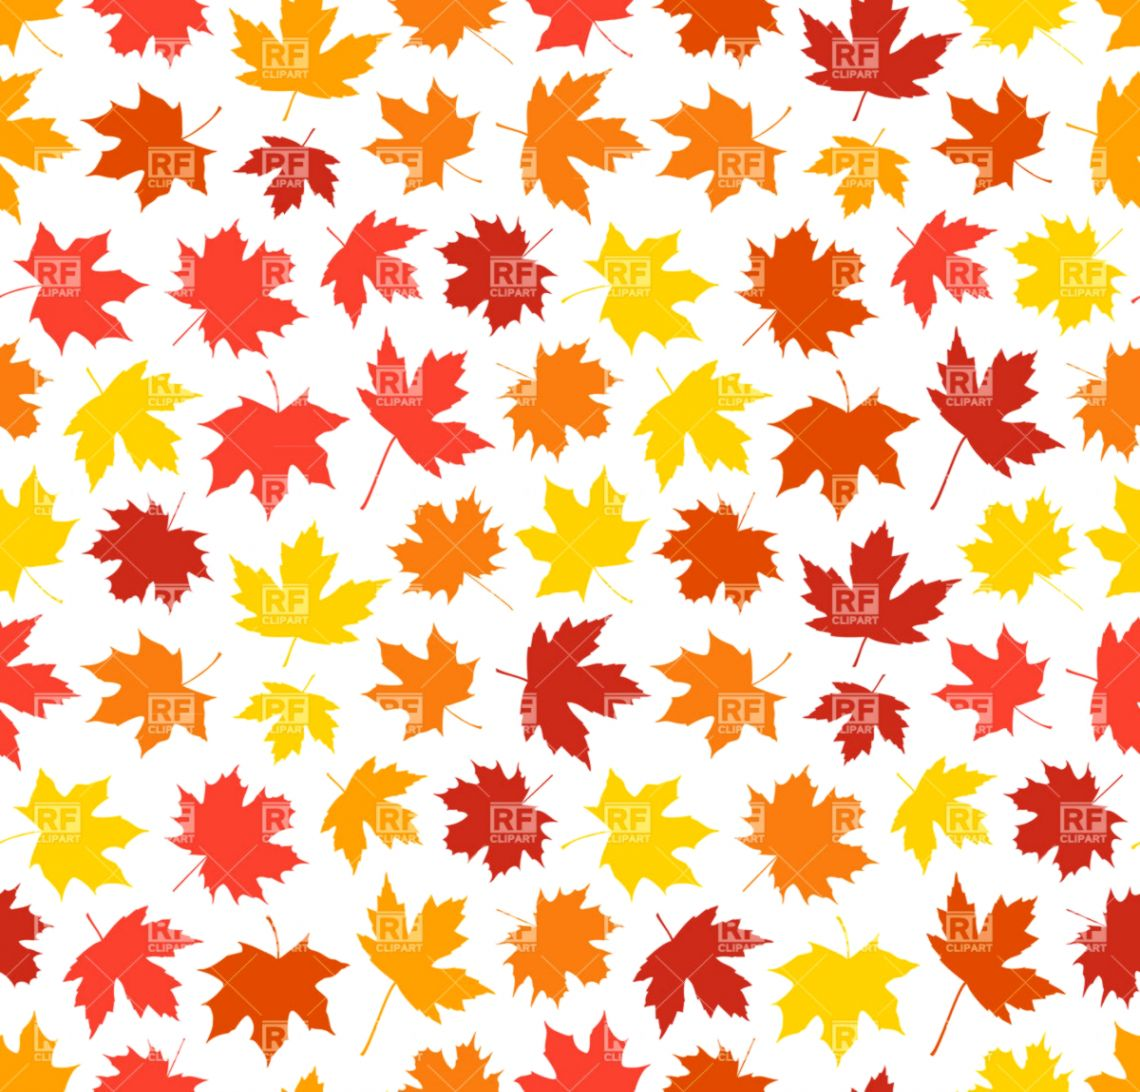 hight resolution of seamless autumn background with maple leaves silhouettes vector